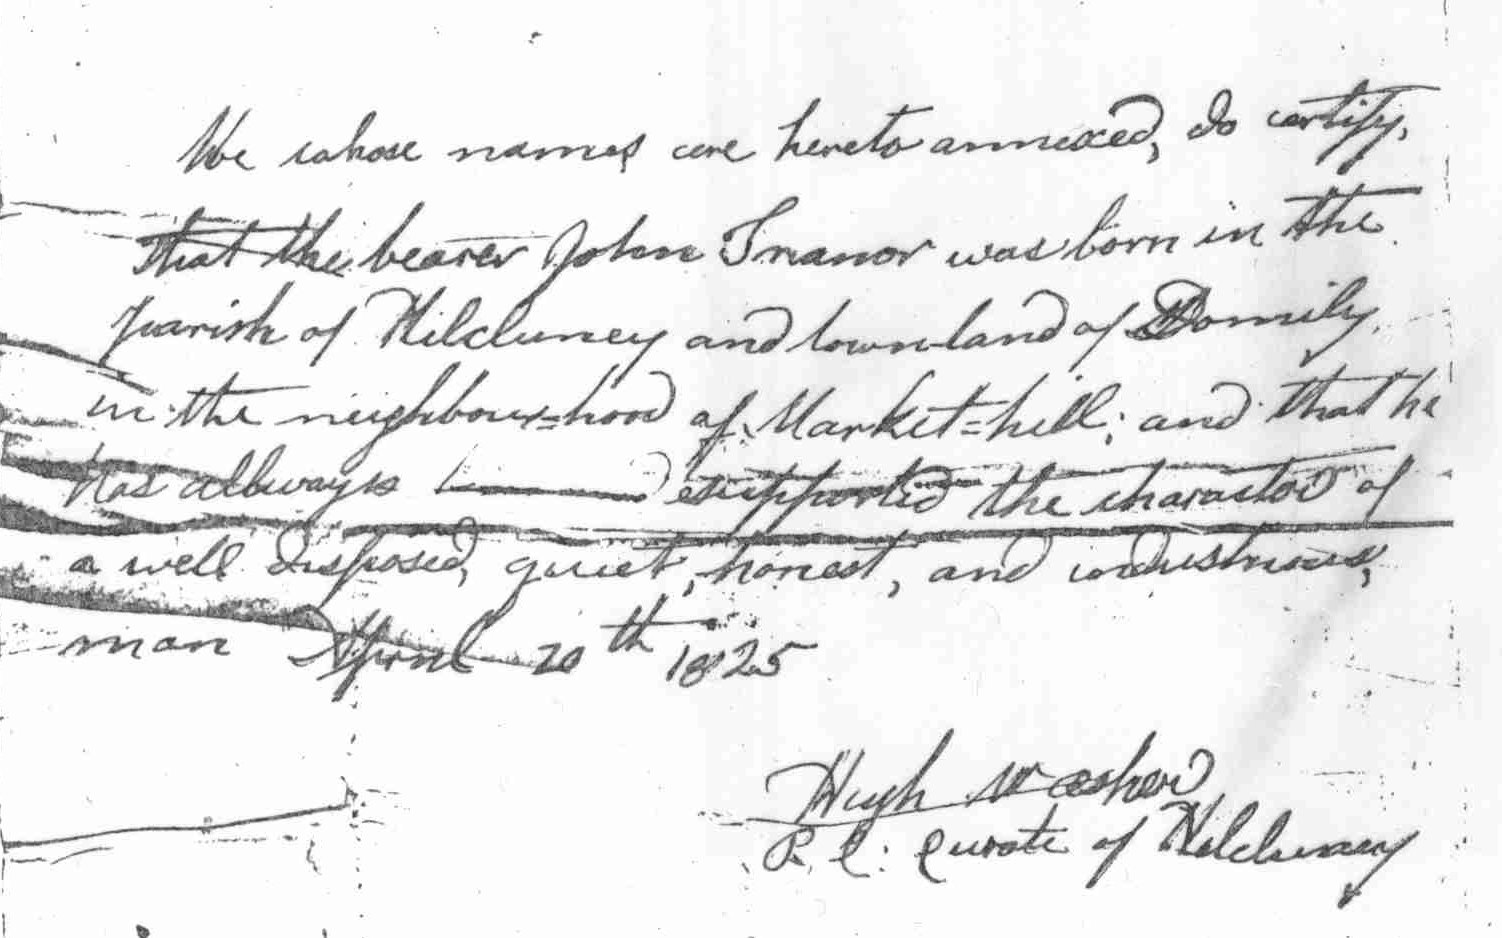 Letter of Recomendation for John Trainor, about to